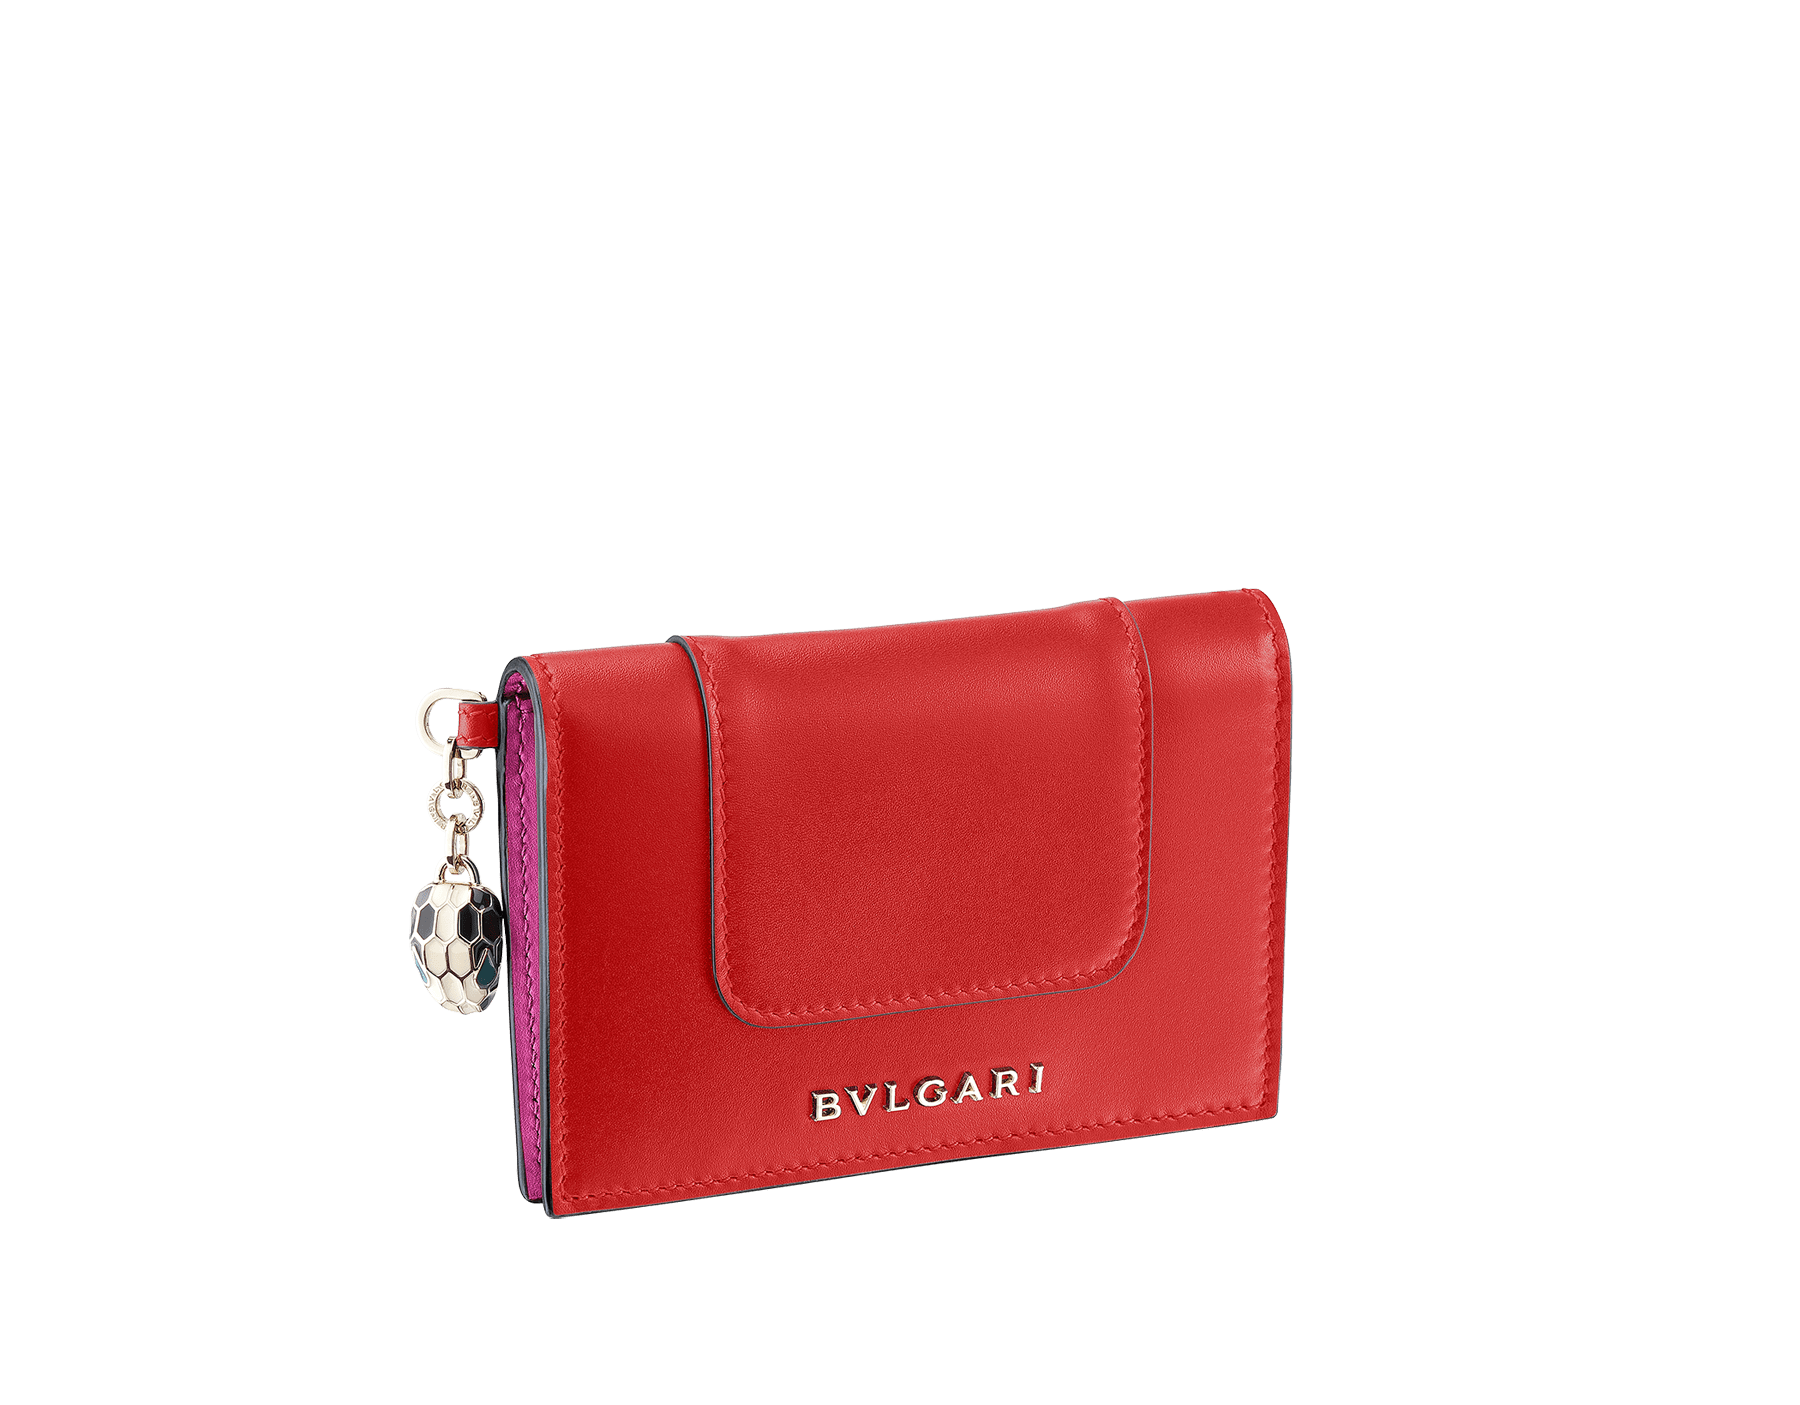 Serpenti Forever folded credit card holder in carmine jasper and flash amethyst calf leather. Iconic snakehead charm in black and white enamel, with green malachite enamel eyes. 288821 image 1